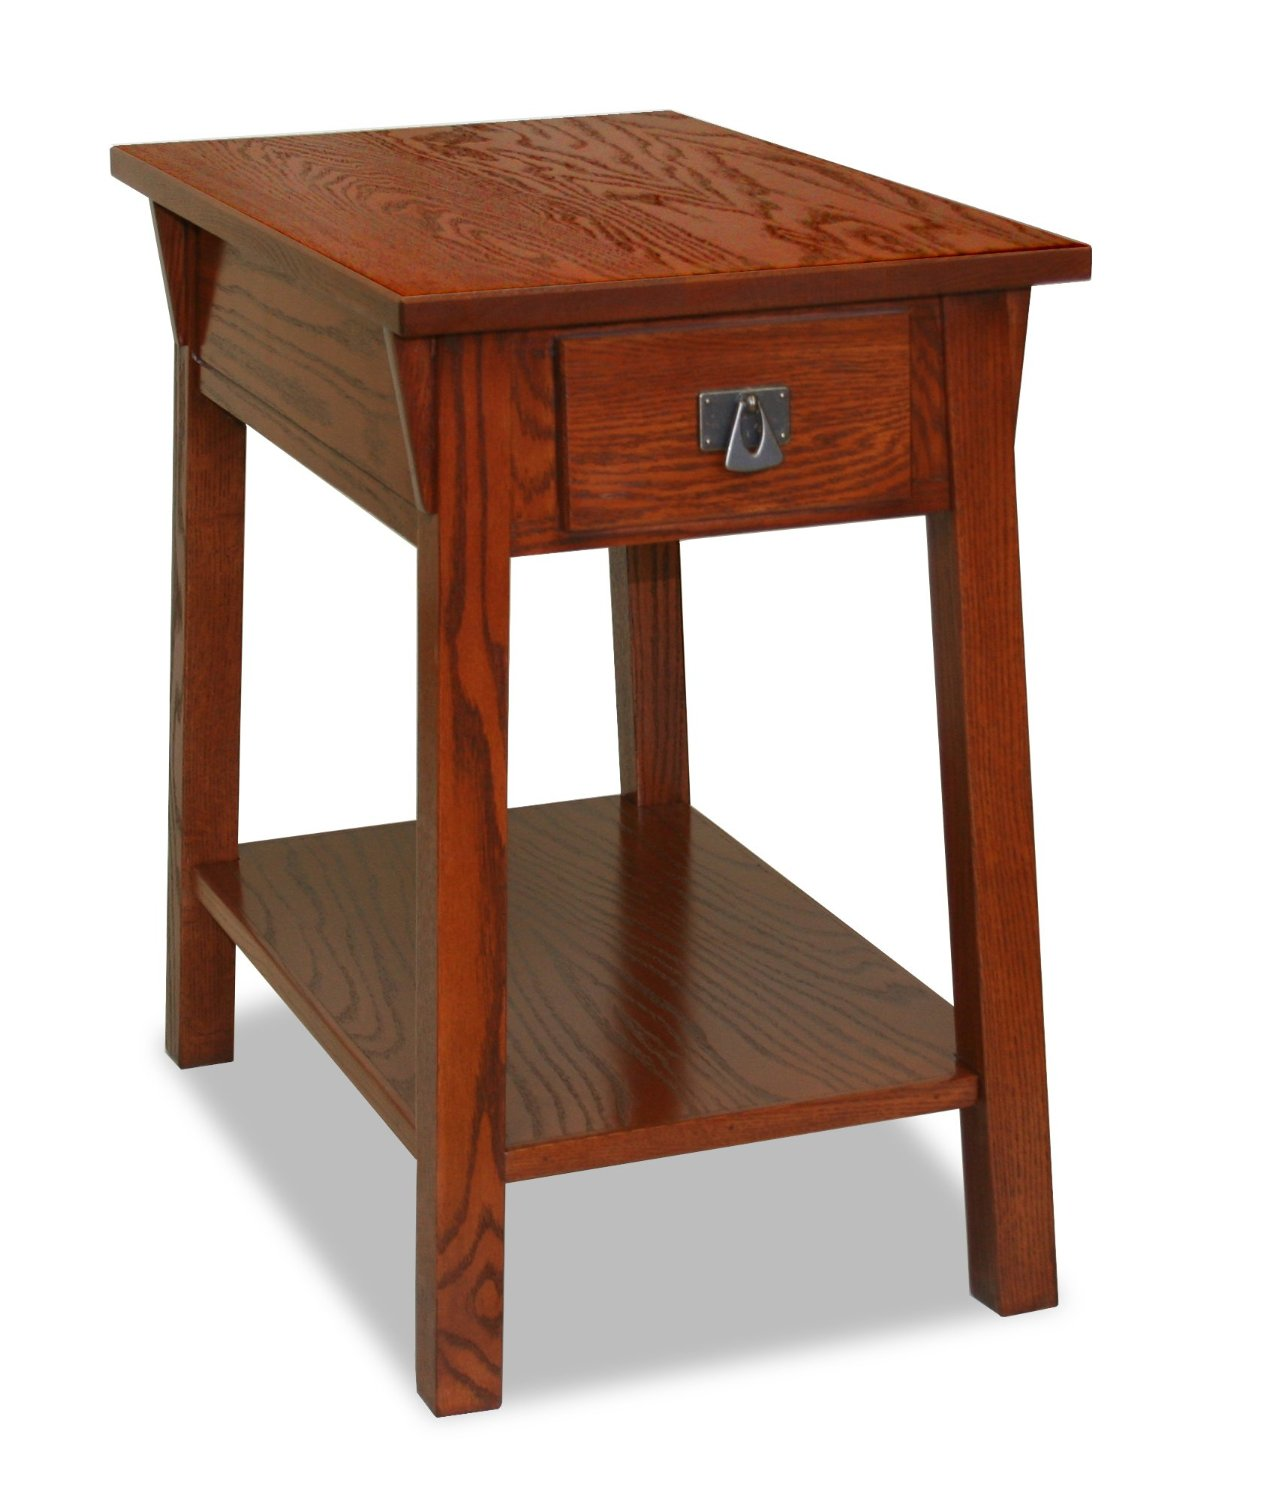 Smalle Tafel Perfect Small End Table With Drawer Homesfeed